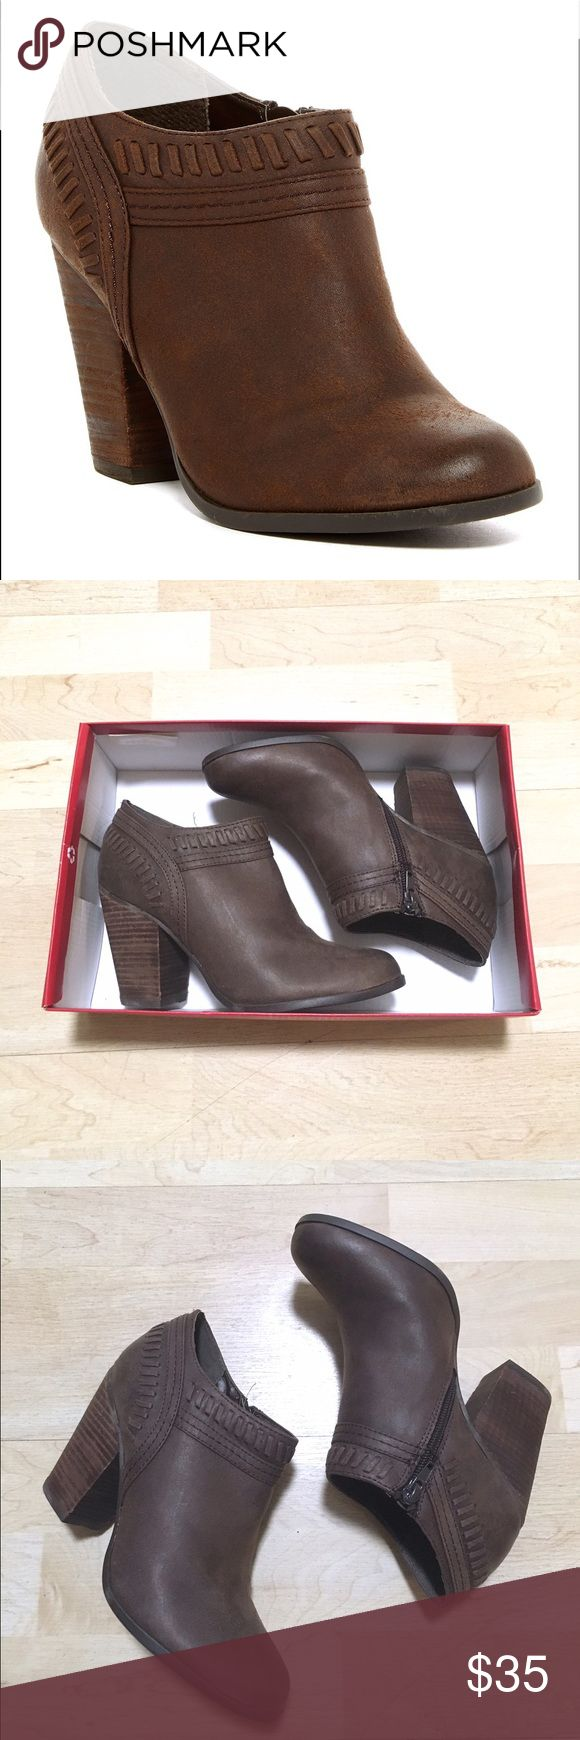 Carlos Santana | Rollins Booties Brown booties from Carlos by Carlos Santana. Size 8 and runs true to size. New in box and never worn! 📬Fast Shipping (will ship same day or next business day if purchased after 3pm)📬🥂10% Off 2+ Items🥂 Carlos Santana Shoes Ankle Boots & Booties